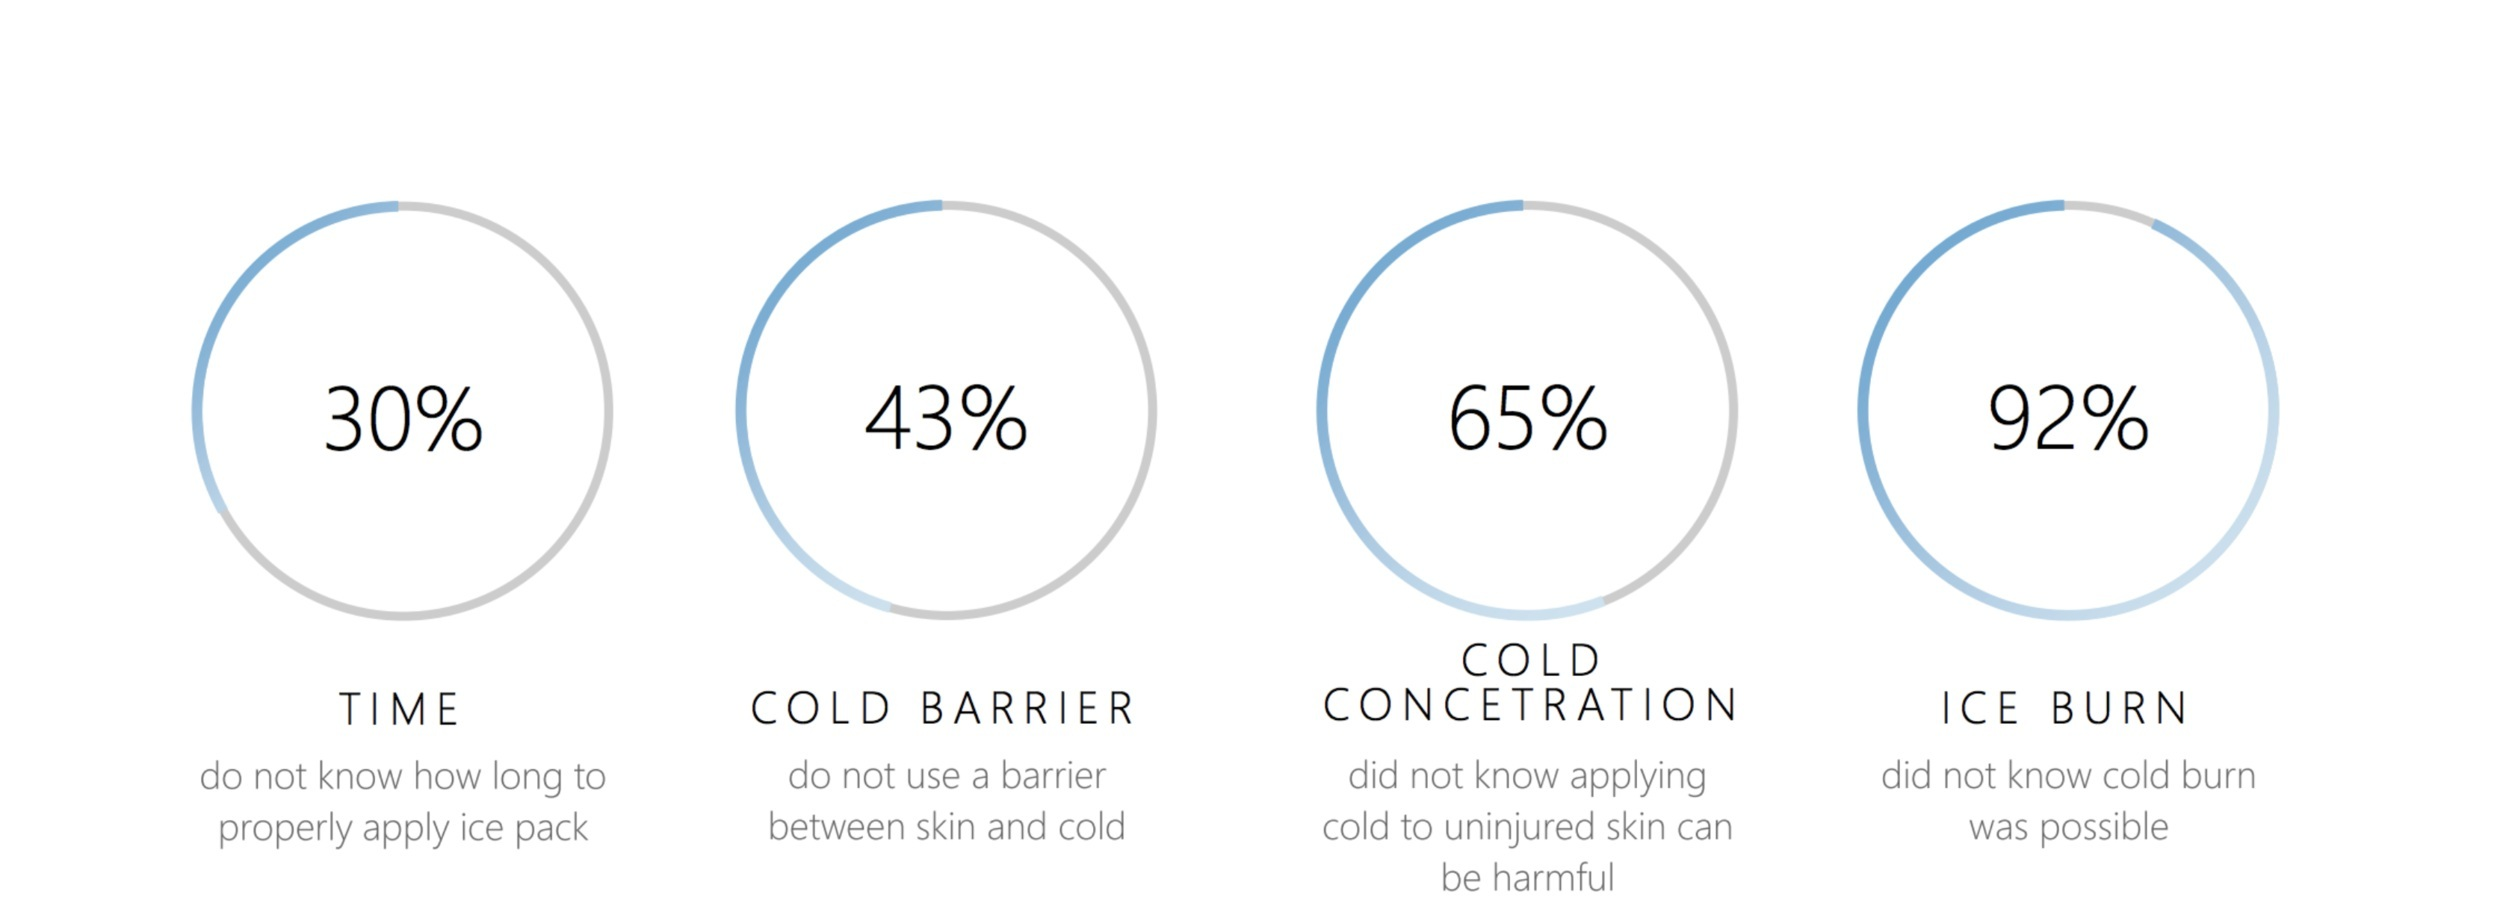 Research data collected from a user experience ice pack survey